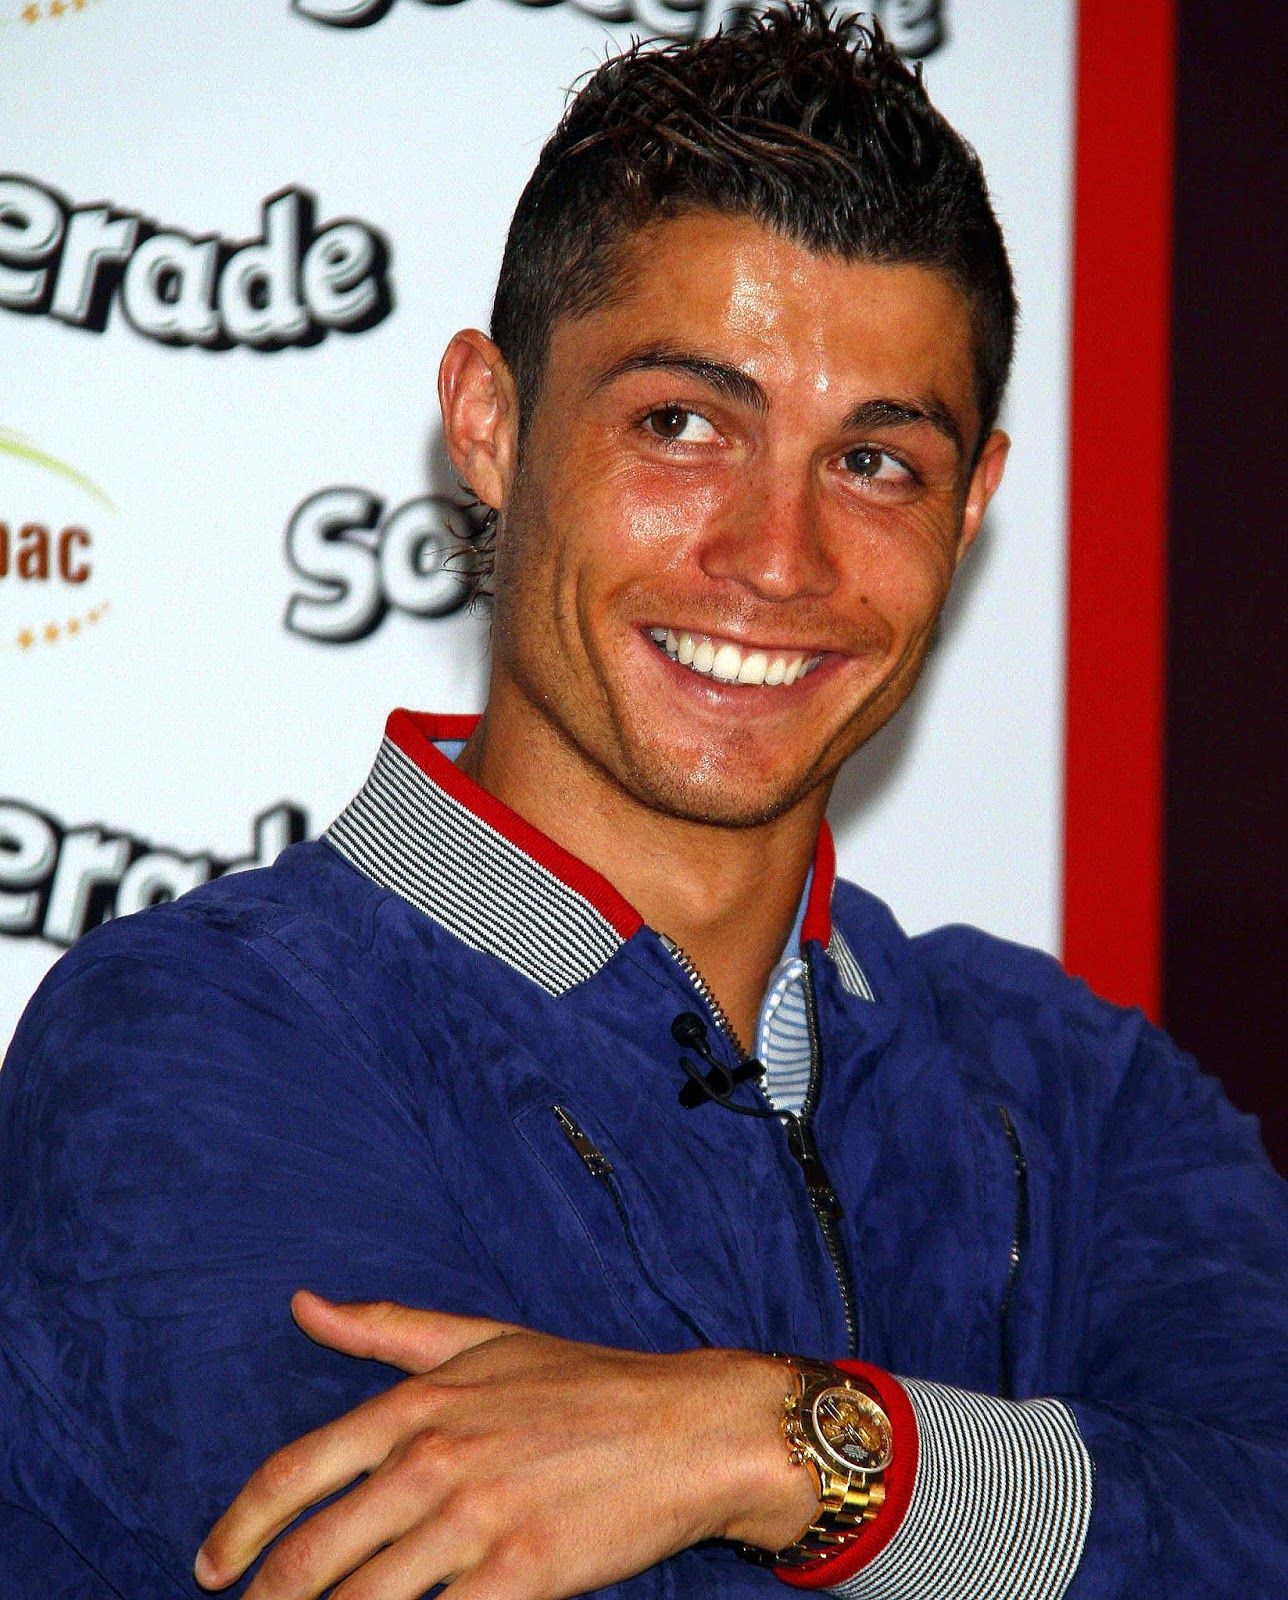 Check Out Cristiano Ronaldo Wearing His Yellow Gold Rolex Daytona